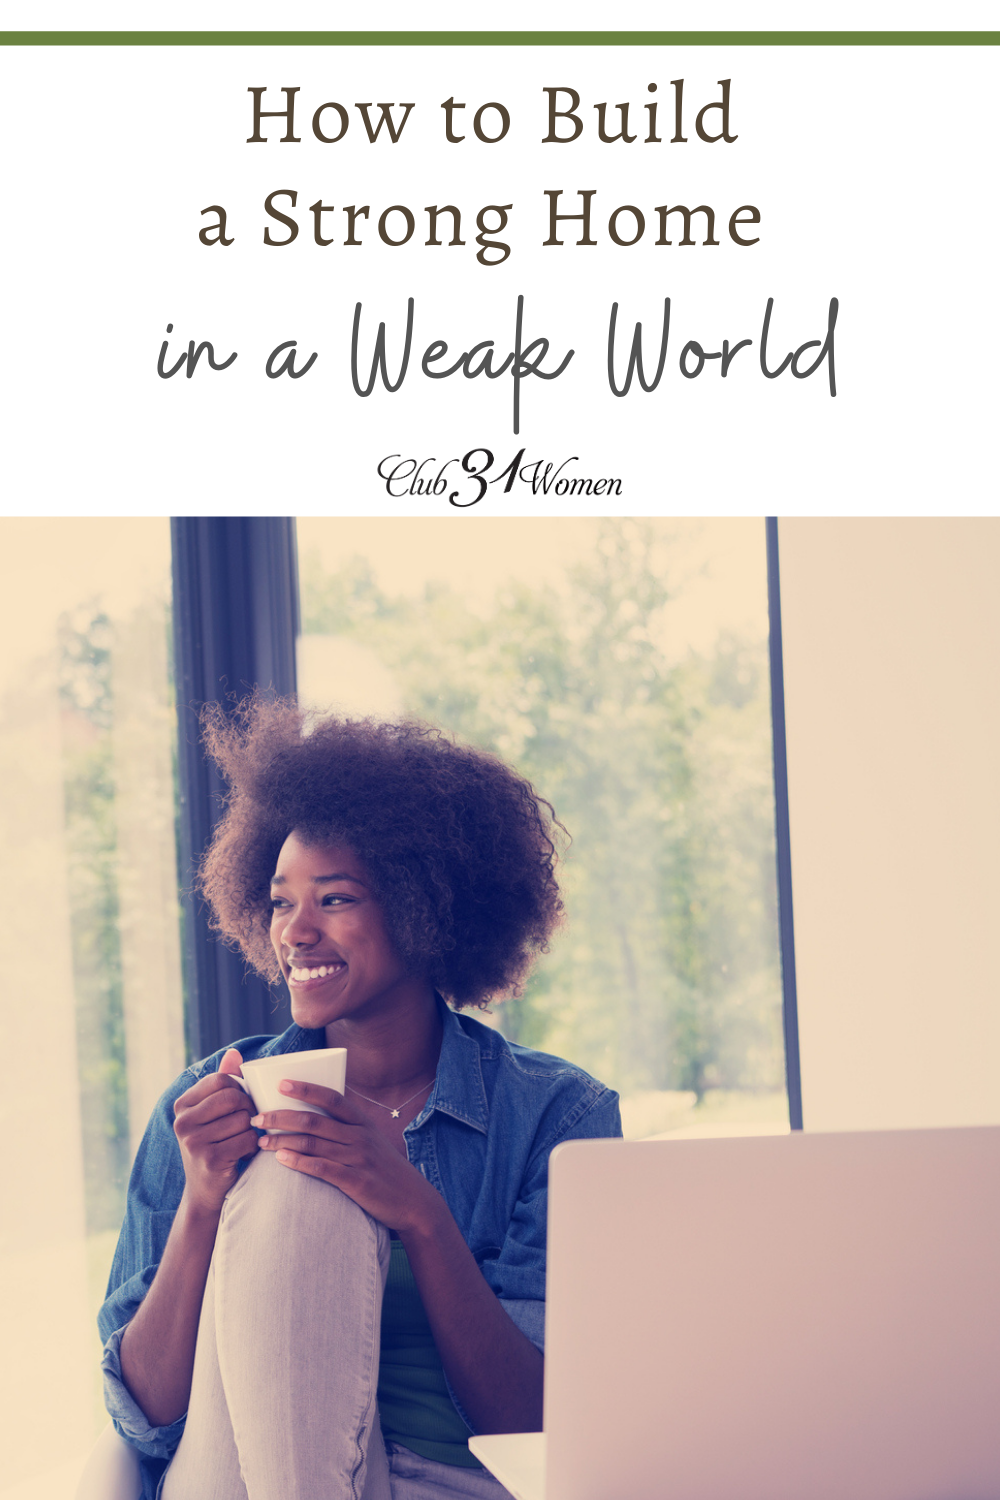 With the world being what it is, it's hard to make and keep a strong home. But with a little direction and intention, you CAN build it. via @Club31Women